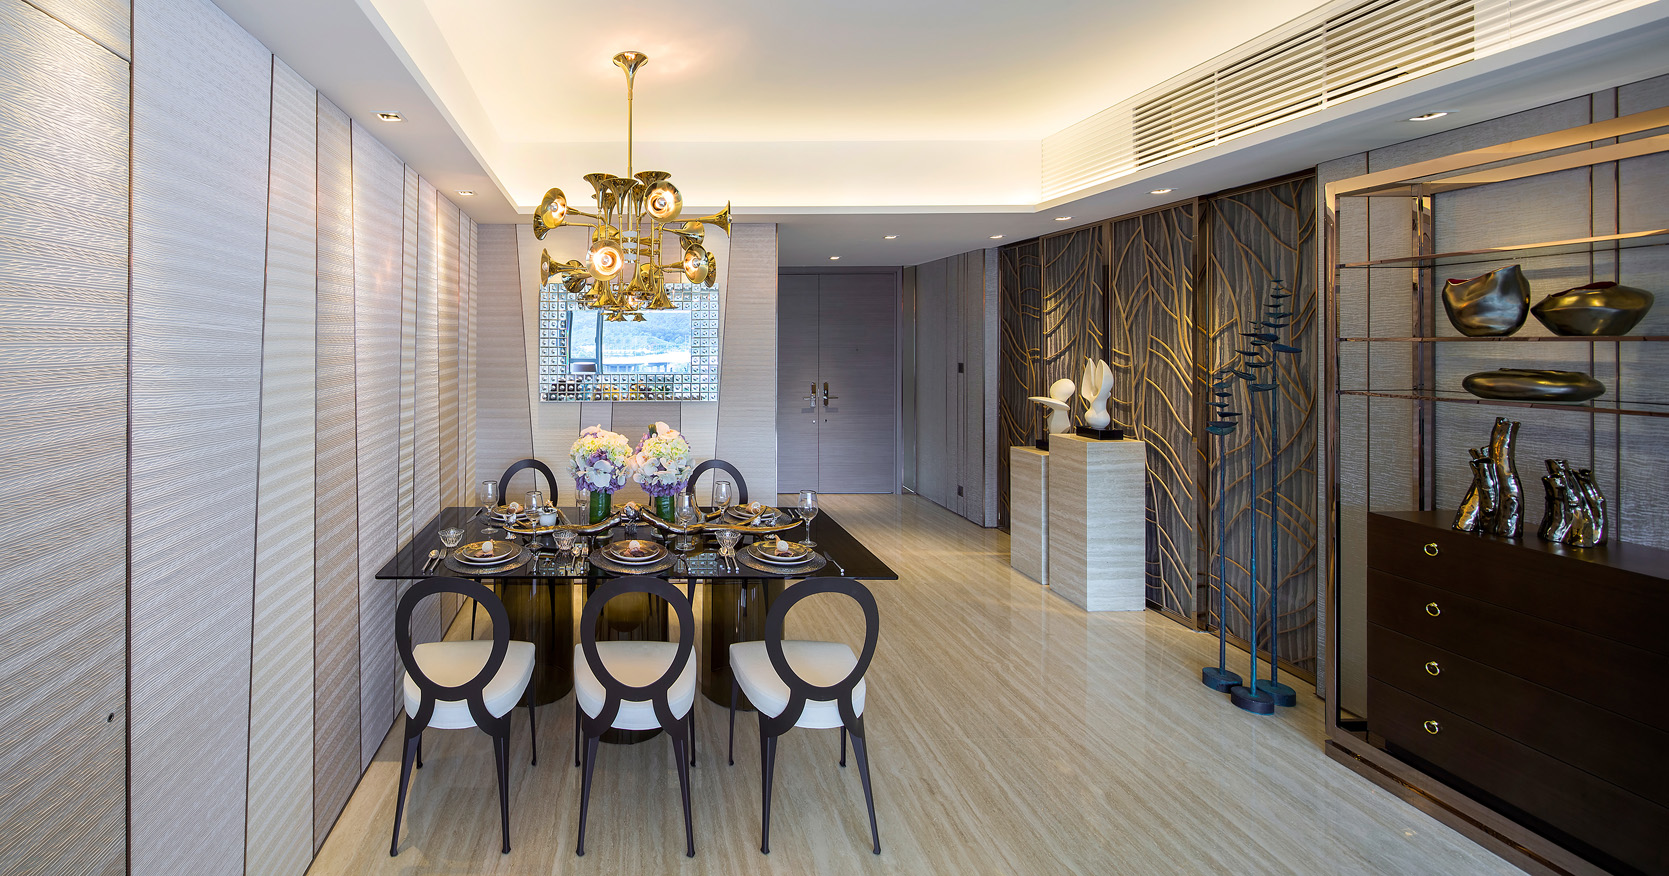 Dining room lighting ideas for a luxury interior Top Interior Designers Discover the Work of 5 Top Interior Designers Dining room lighting ideas Delightfull Botti Top Interior Designers Discover the Work of 5 Top Interior Designers Dining room lighting ideas Delightfull Botti